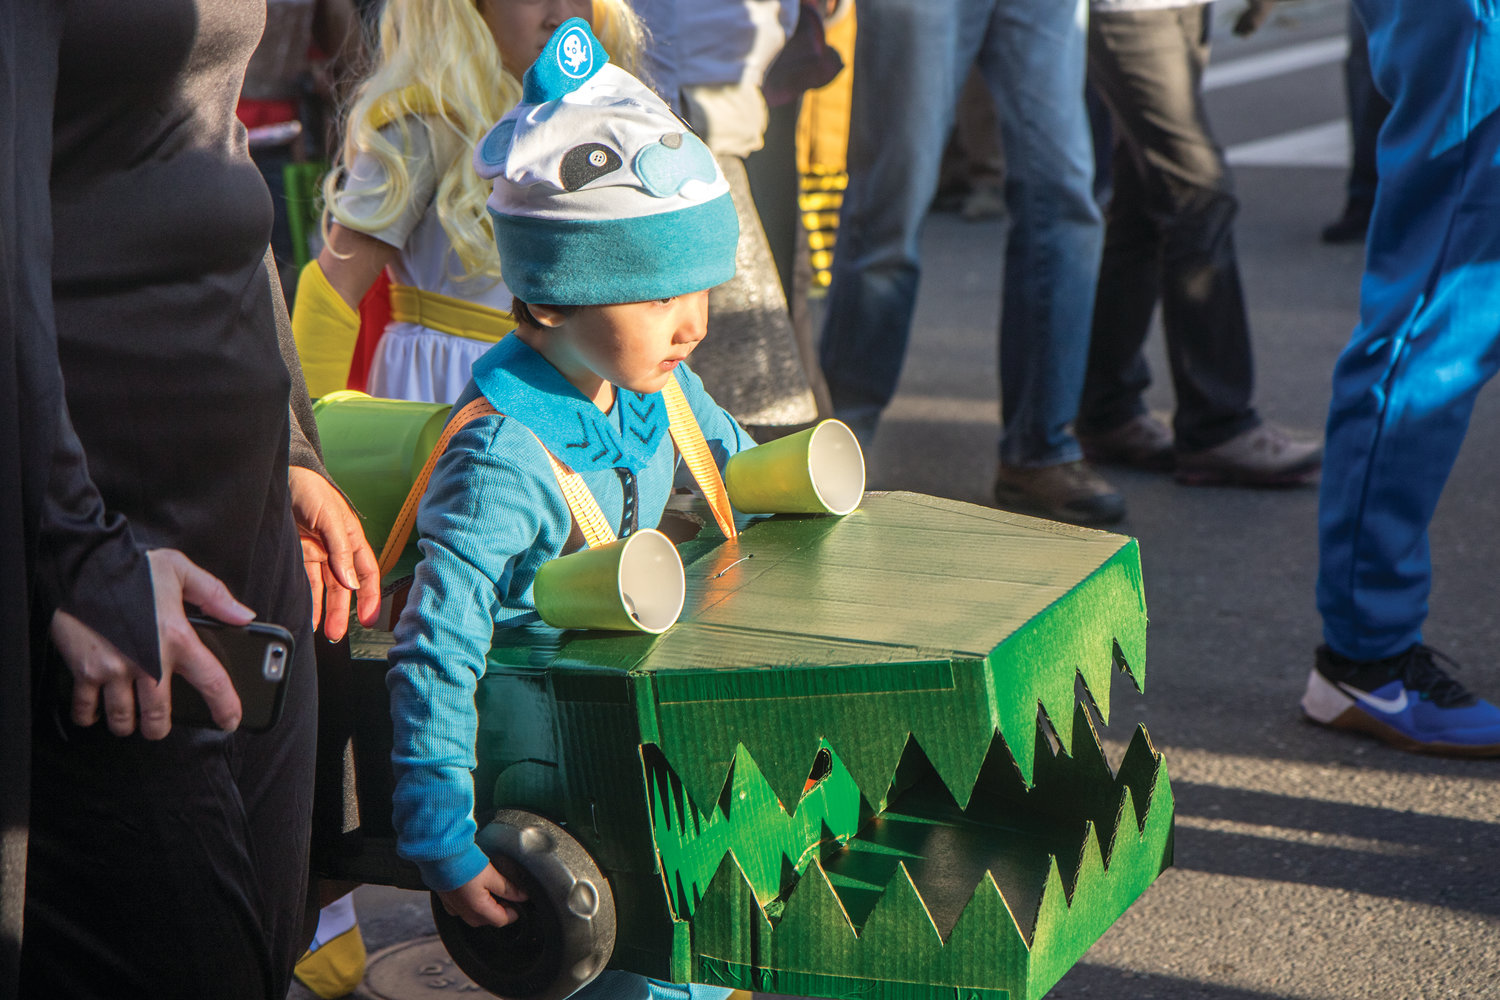 Four-year-old Asa Parker marches down the street as Captain Barnacles.